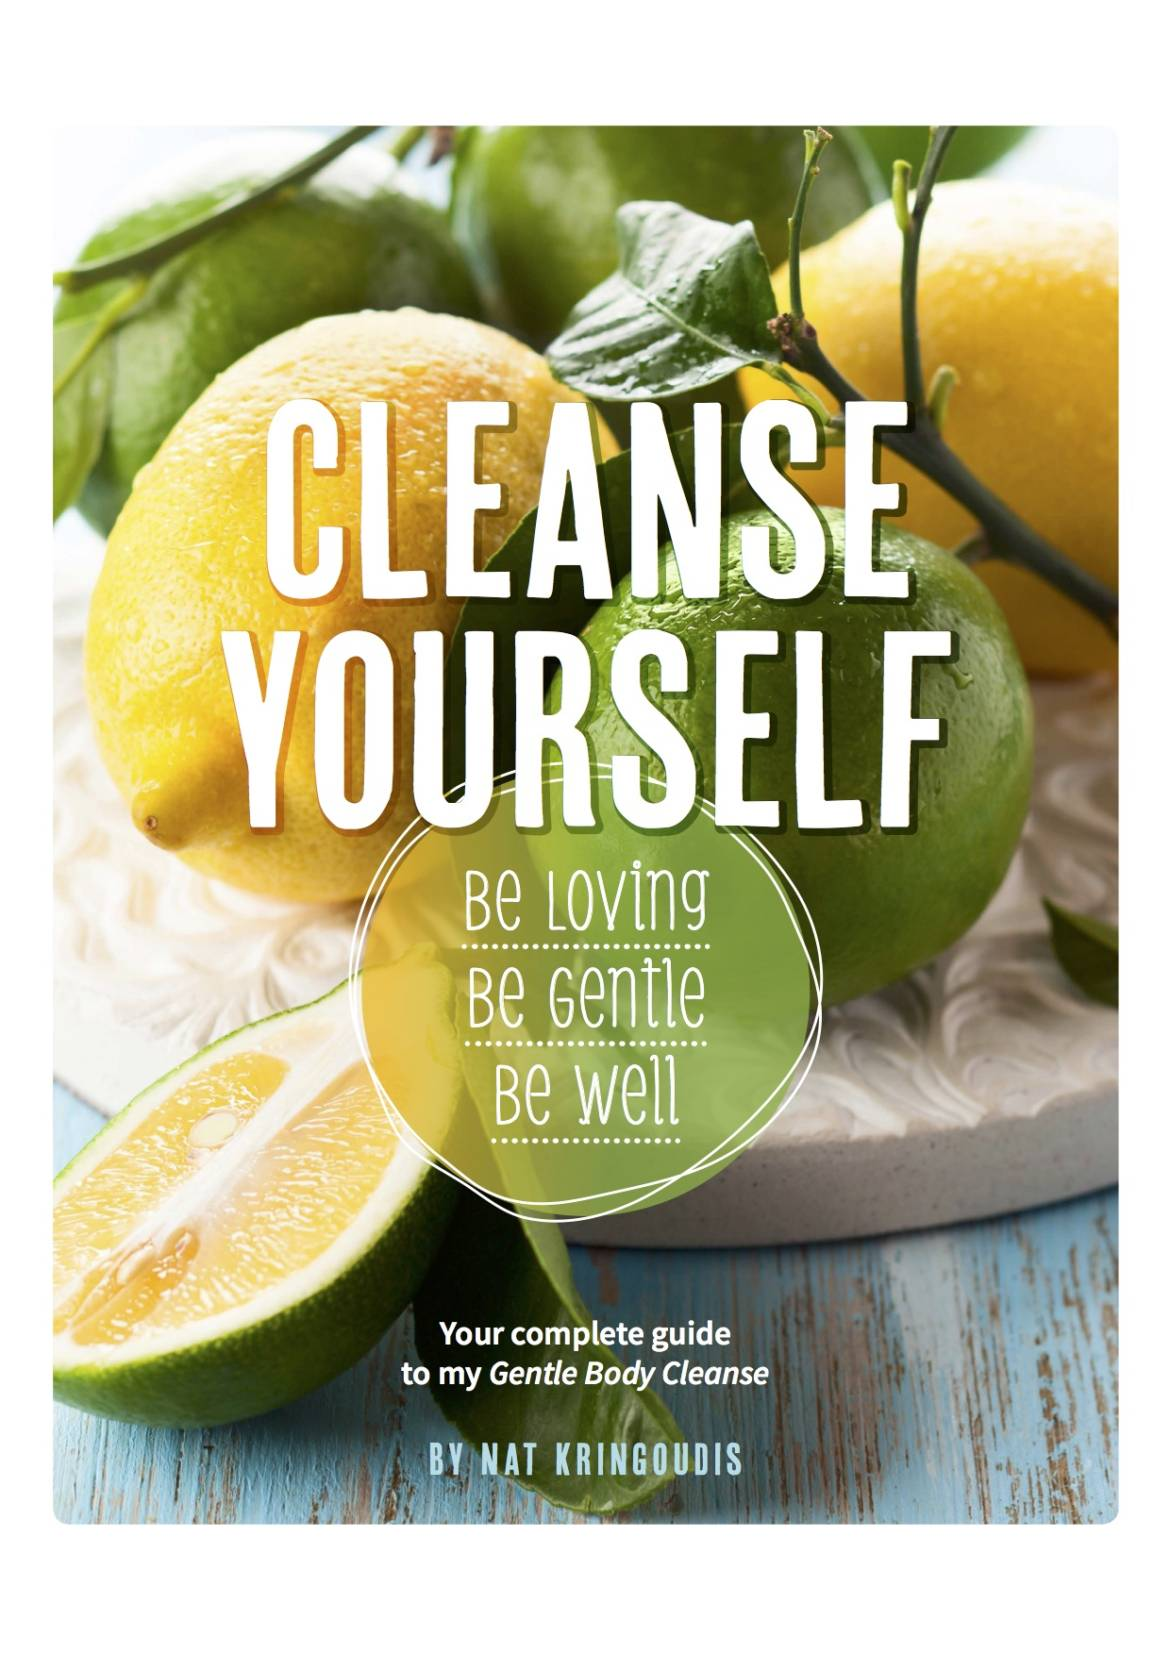 Cleanse-Yourself-Cover.jpg